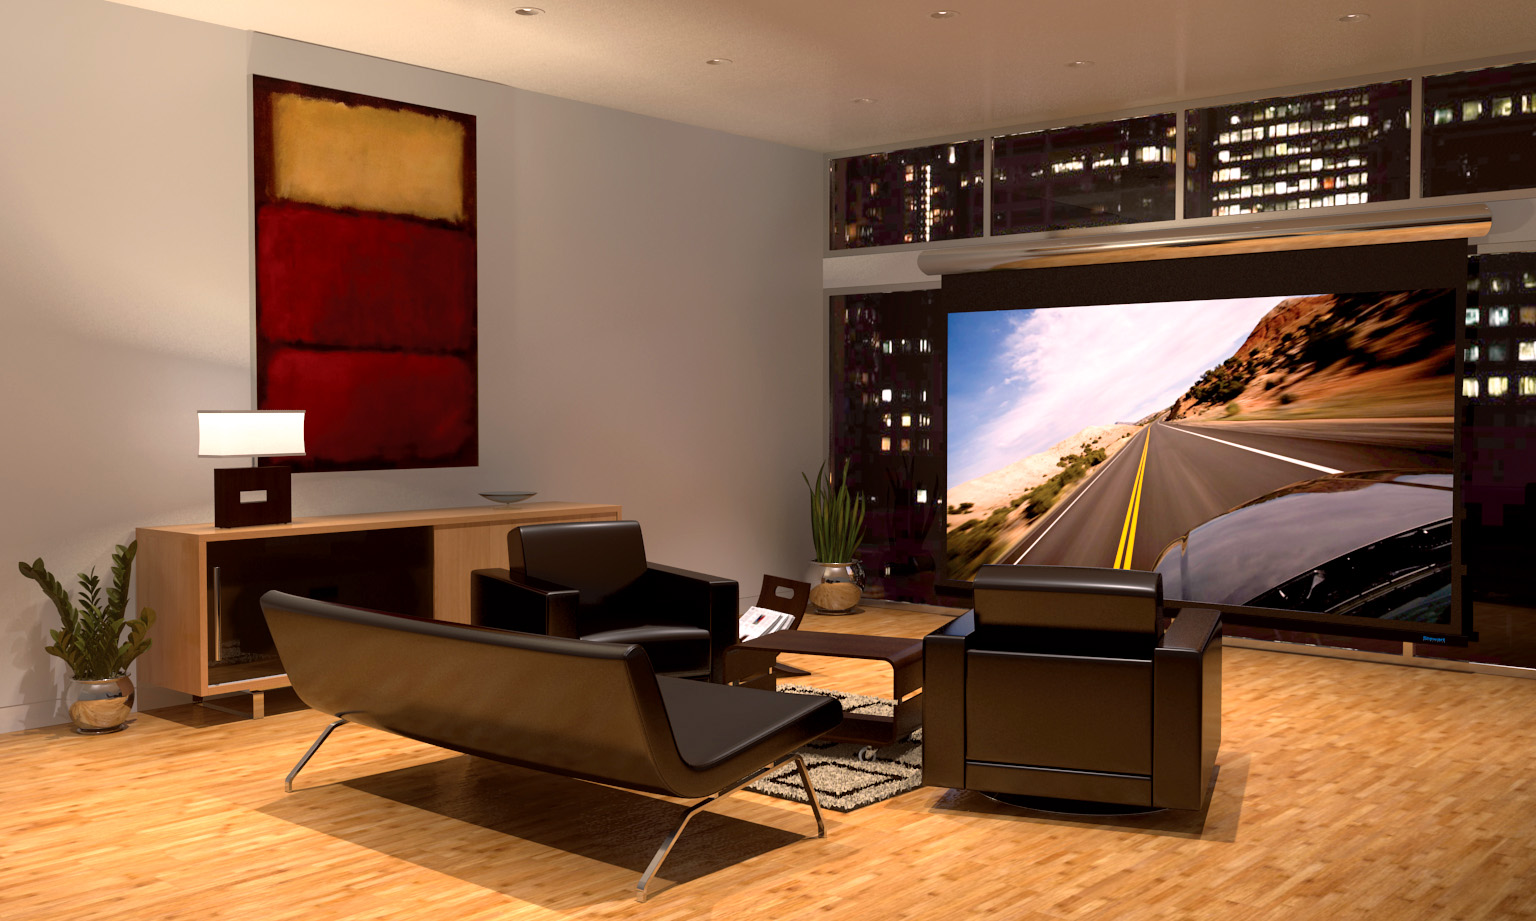 Projectors vs televisions the future of the modern home for Hiding a projector in living room